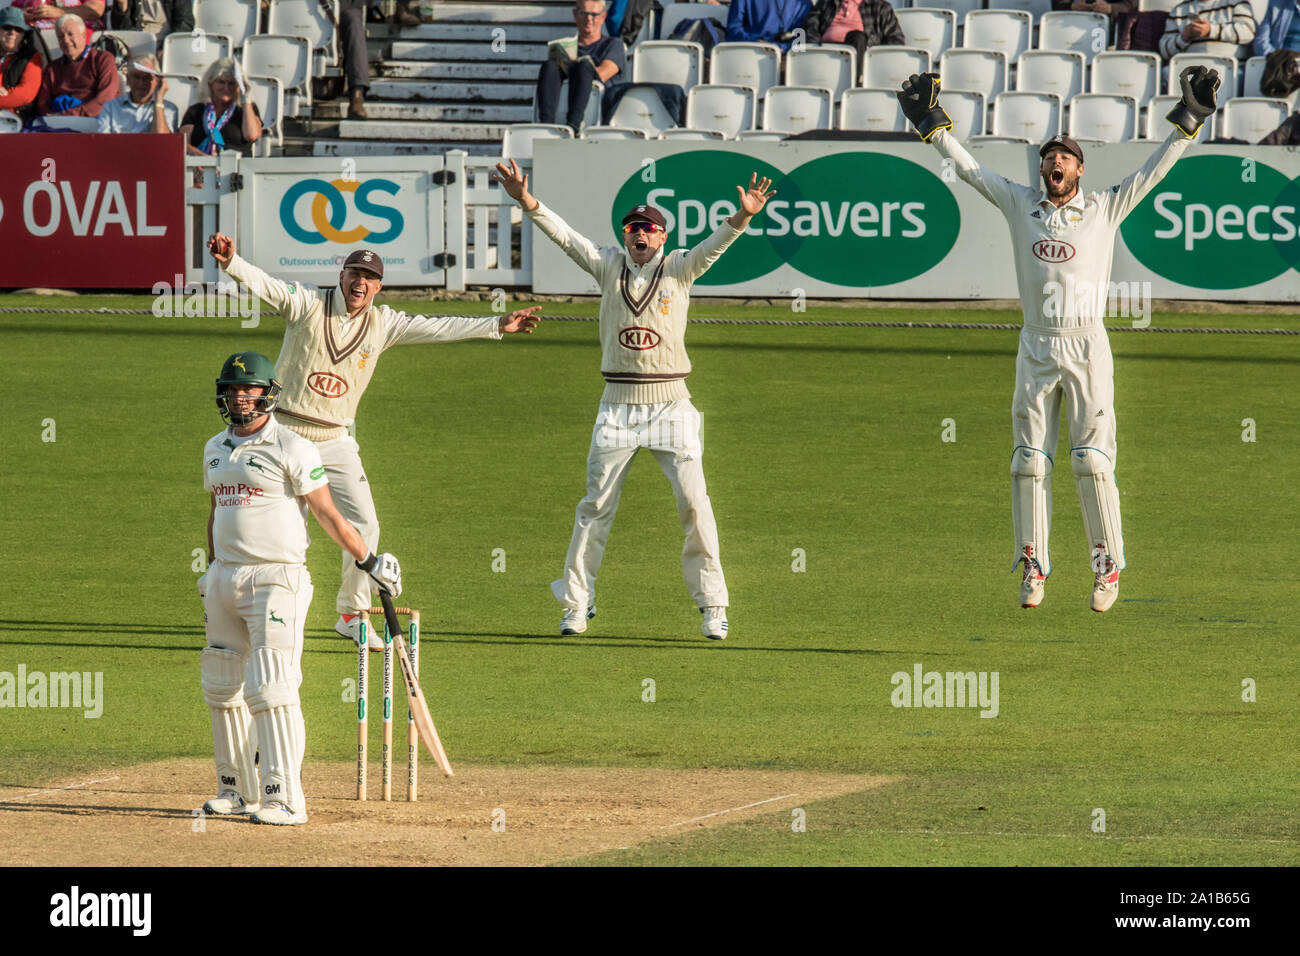 London, UK. 25 September, 2019. The fielders appeal and Rikki Clarke has Steven Mullaney LBW bowling for Surrey against Nottinghamshire on day three of the Specsavers County Championship game at the Oval. David Rowe/Alamy Live New Stock Photo